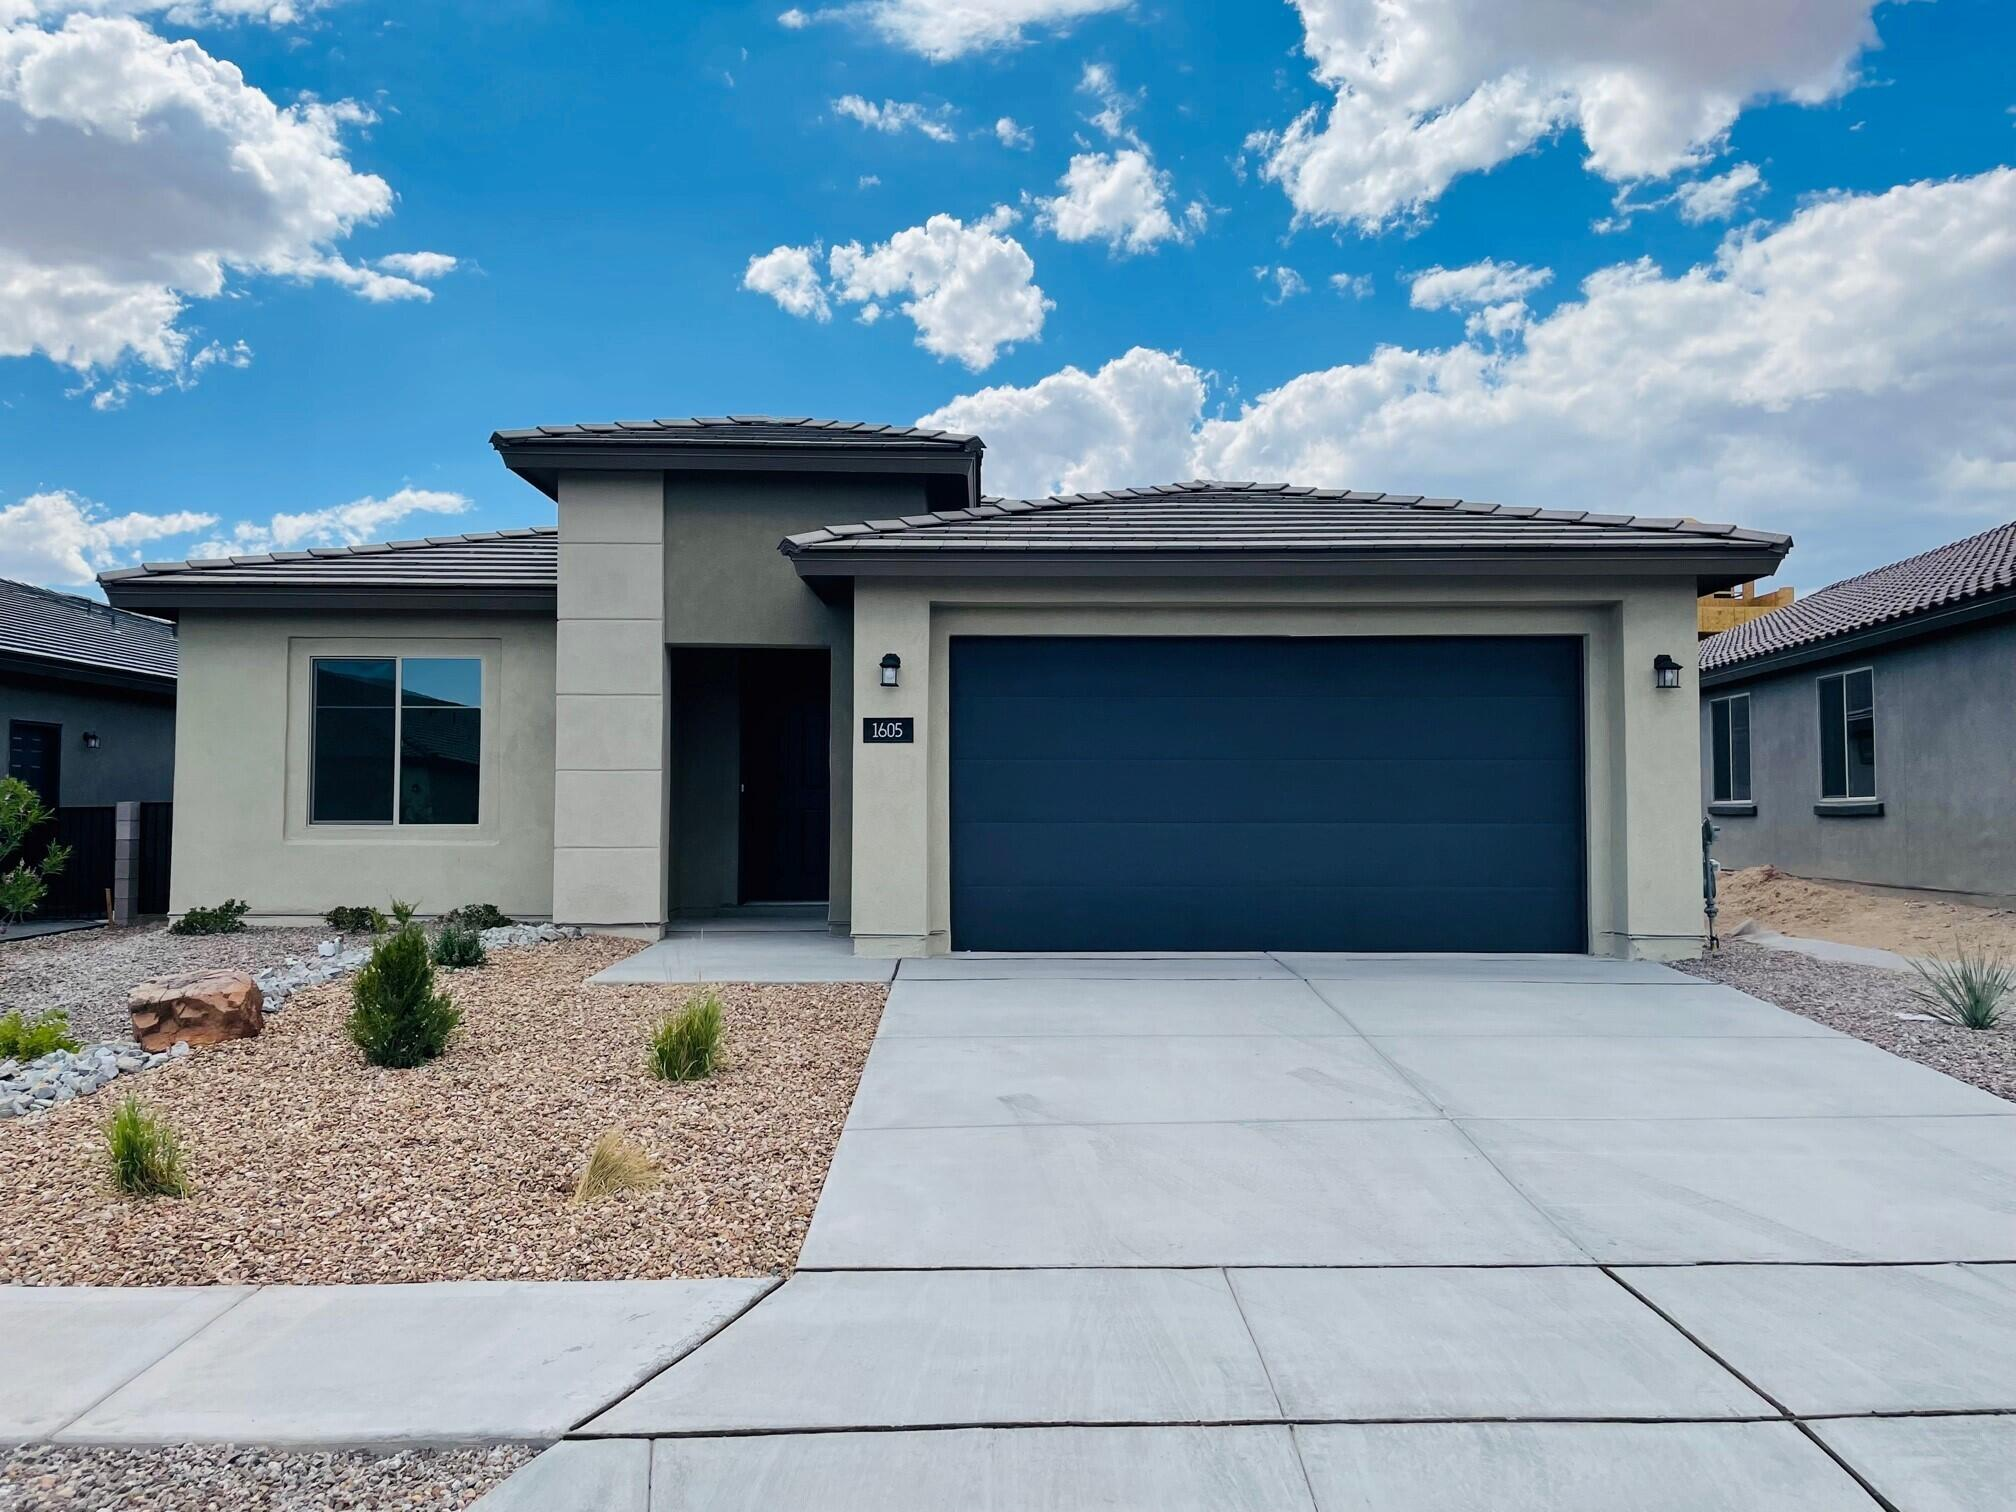 Ready to move in New construction built by Pulte homes! (Manzanita Floor Plan)  Located in the inspiration subdivision. Tile flooring and carpet in the bedrooms. All new appliances. Quick access to I-40.